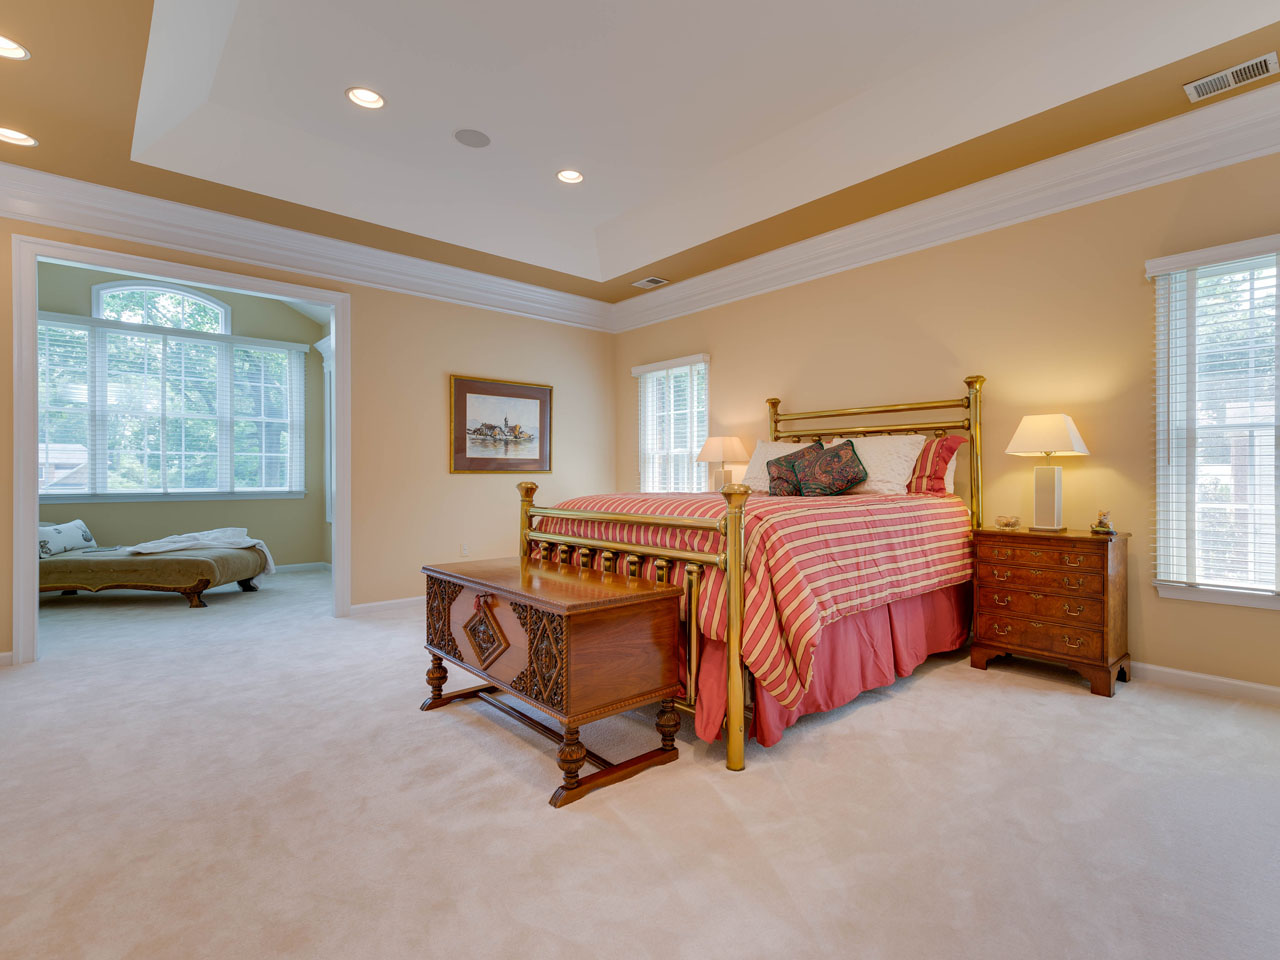 2793_mbr-1 Auburn Annandale Real Estate Listings - Best of Northern Virginia